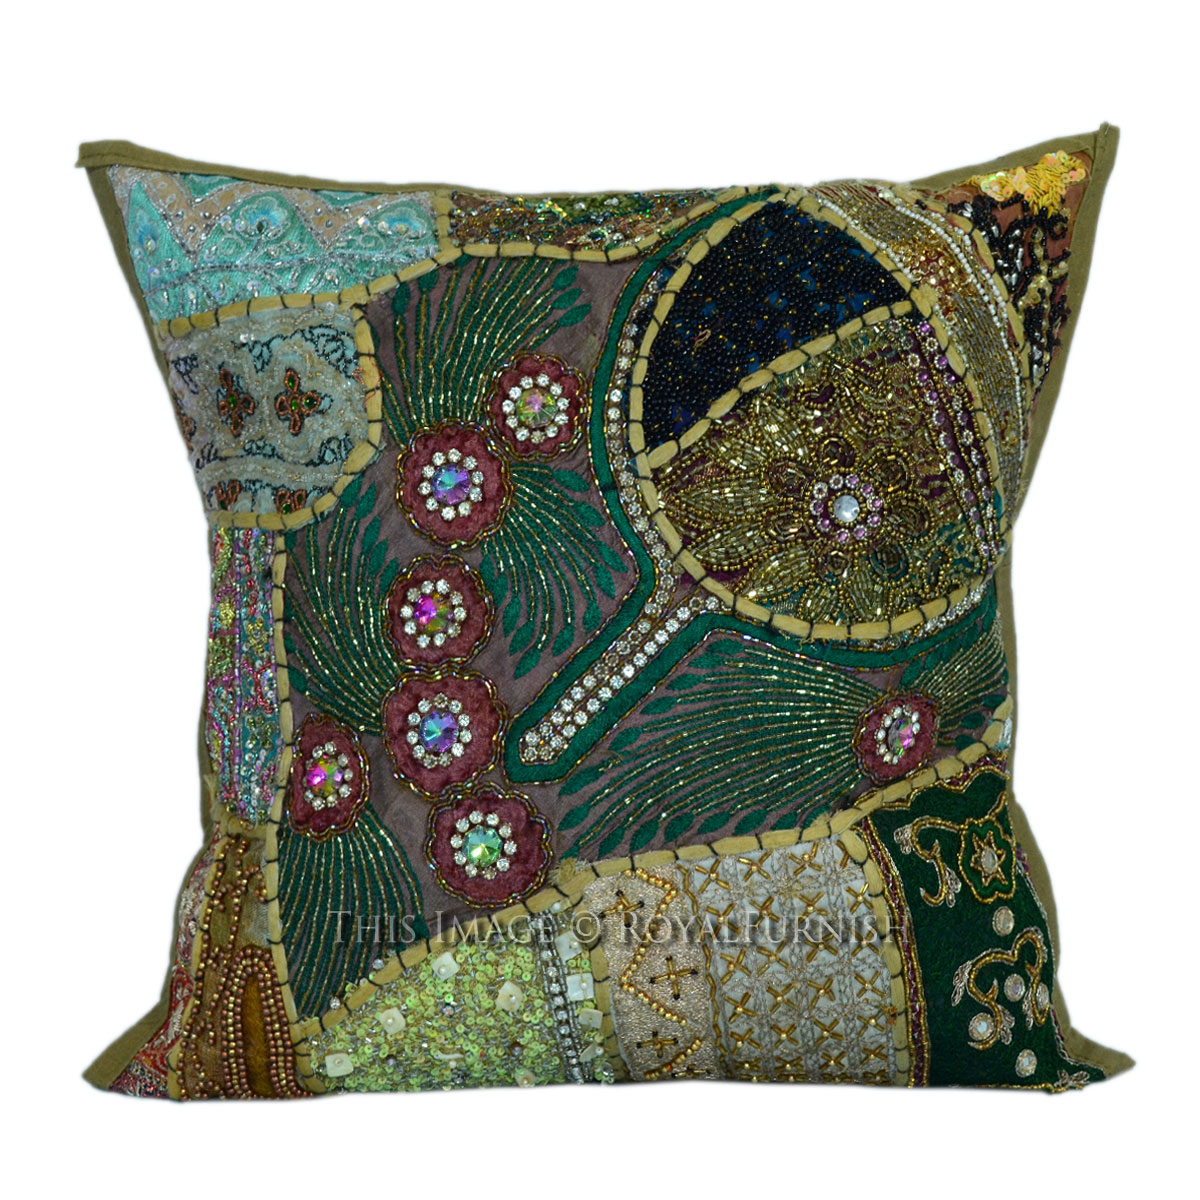 Decorative Pillows With Beads : 16x16 Decorative Handmade Beaded Sequin Square Pillow Cover - RoyalFurnish.com